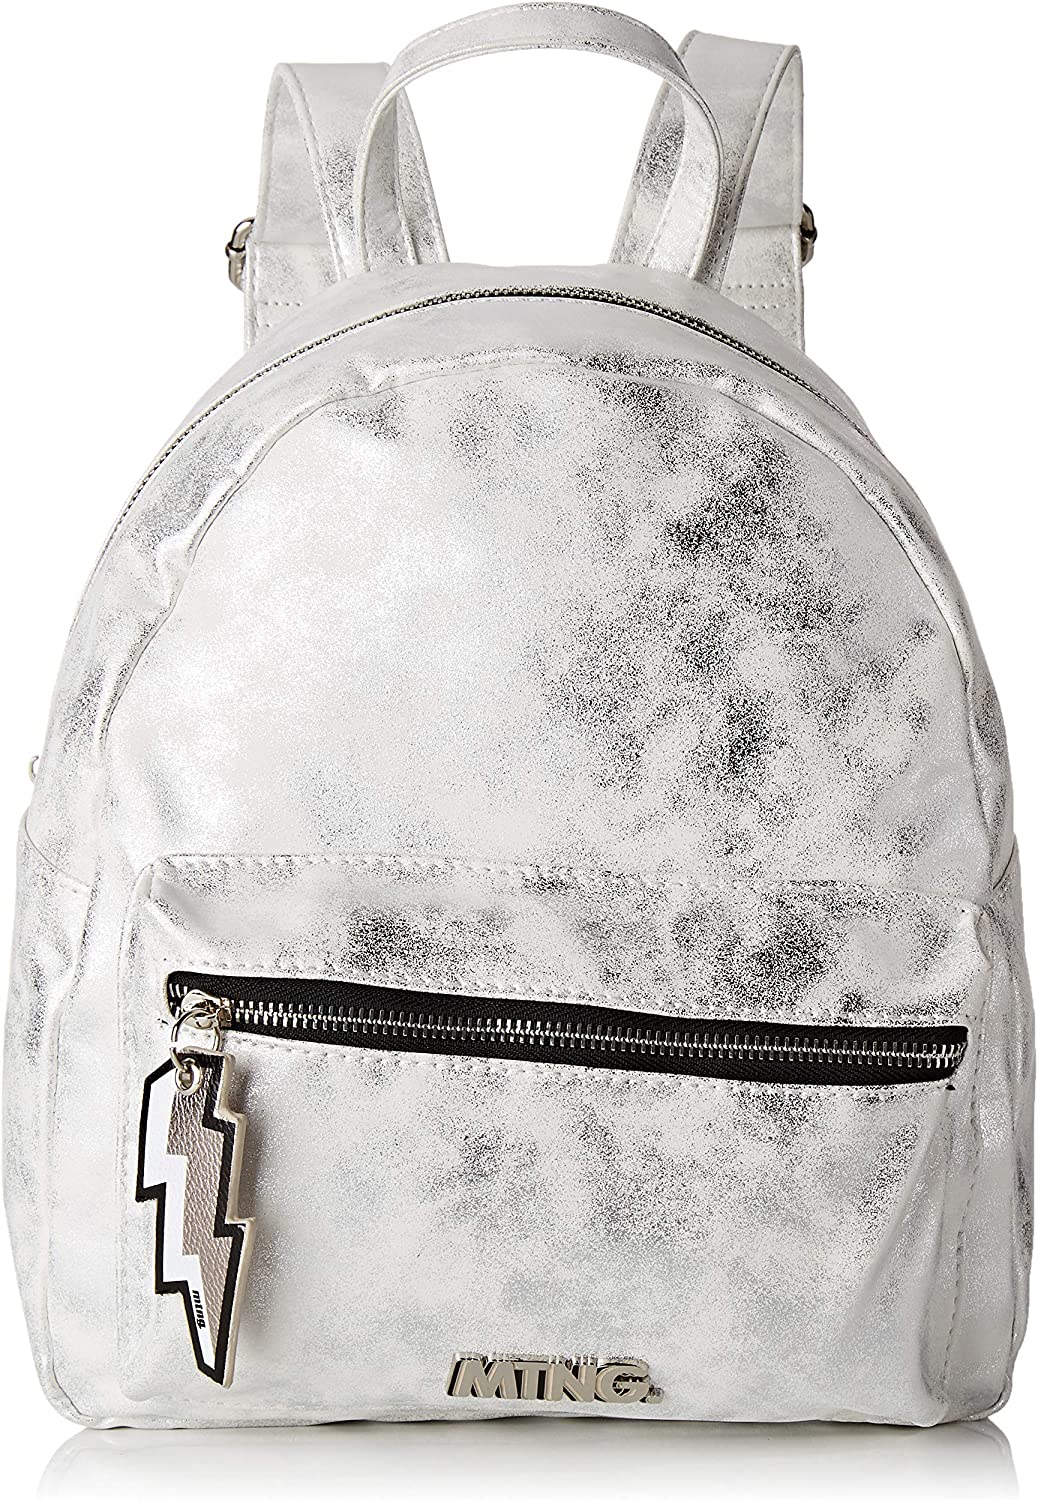 MTNG Women's Melon Backpack Handbag